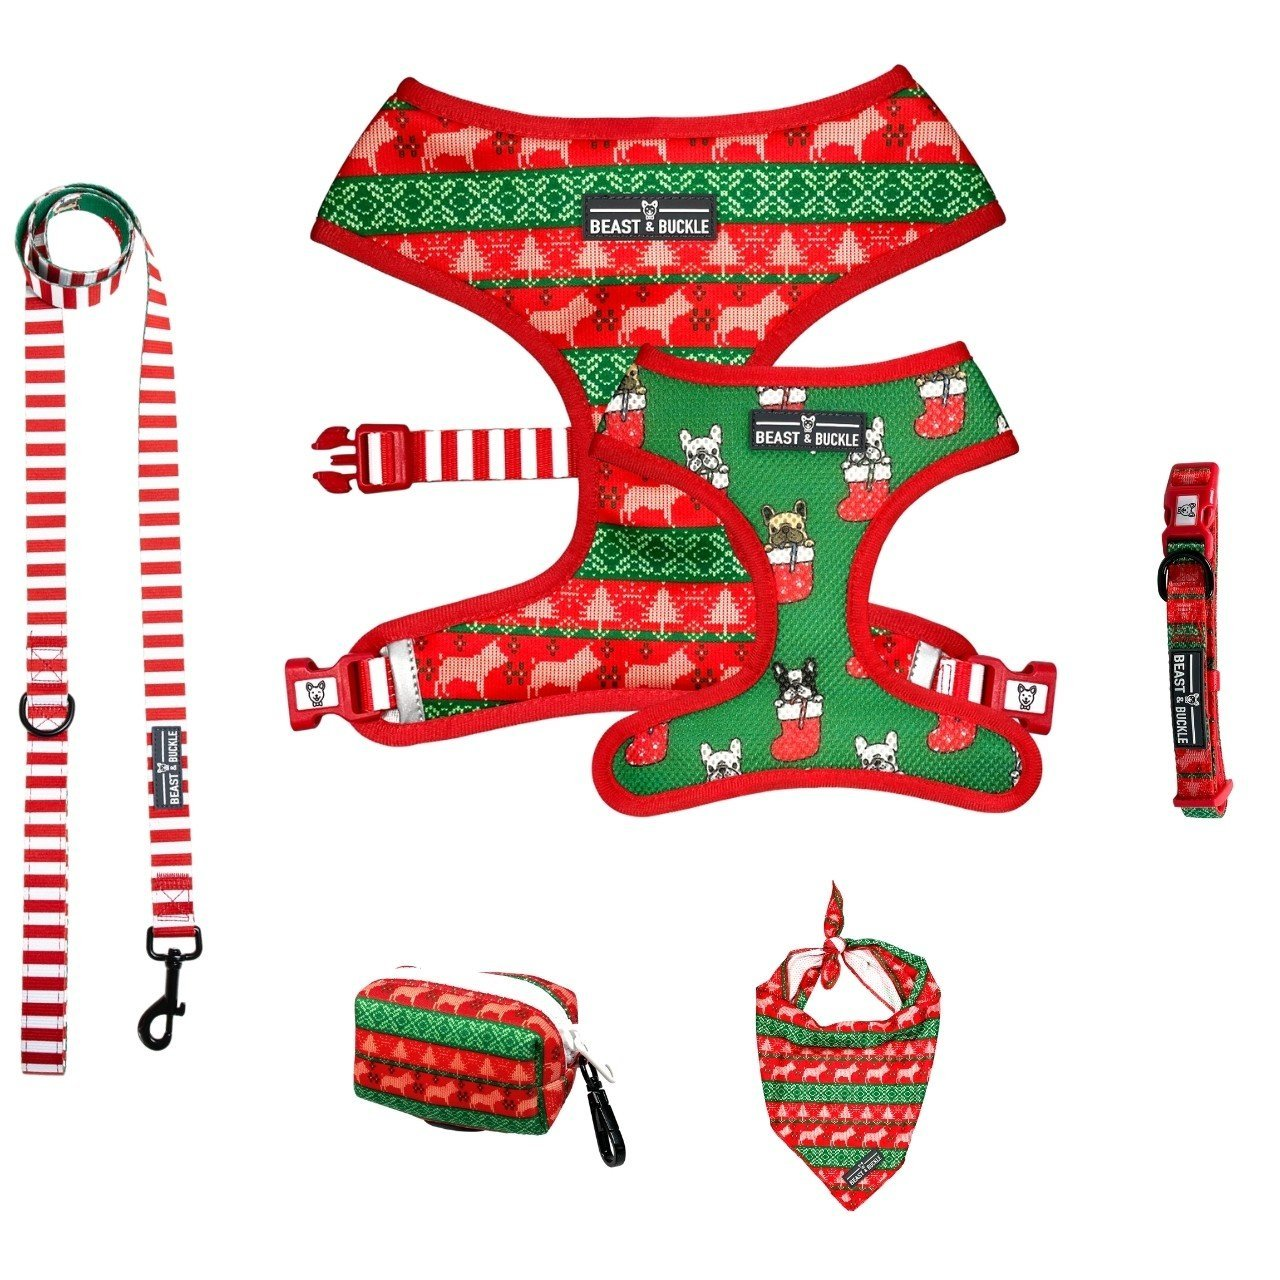 Christmas Harness Collection Bundle - Beast & Buckle